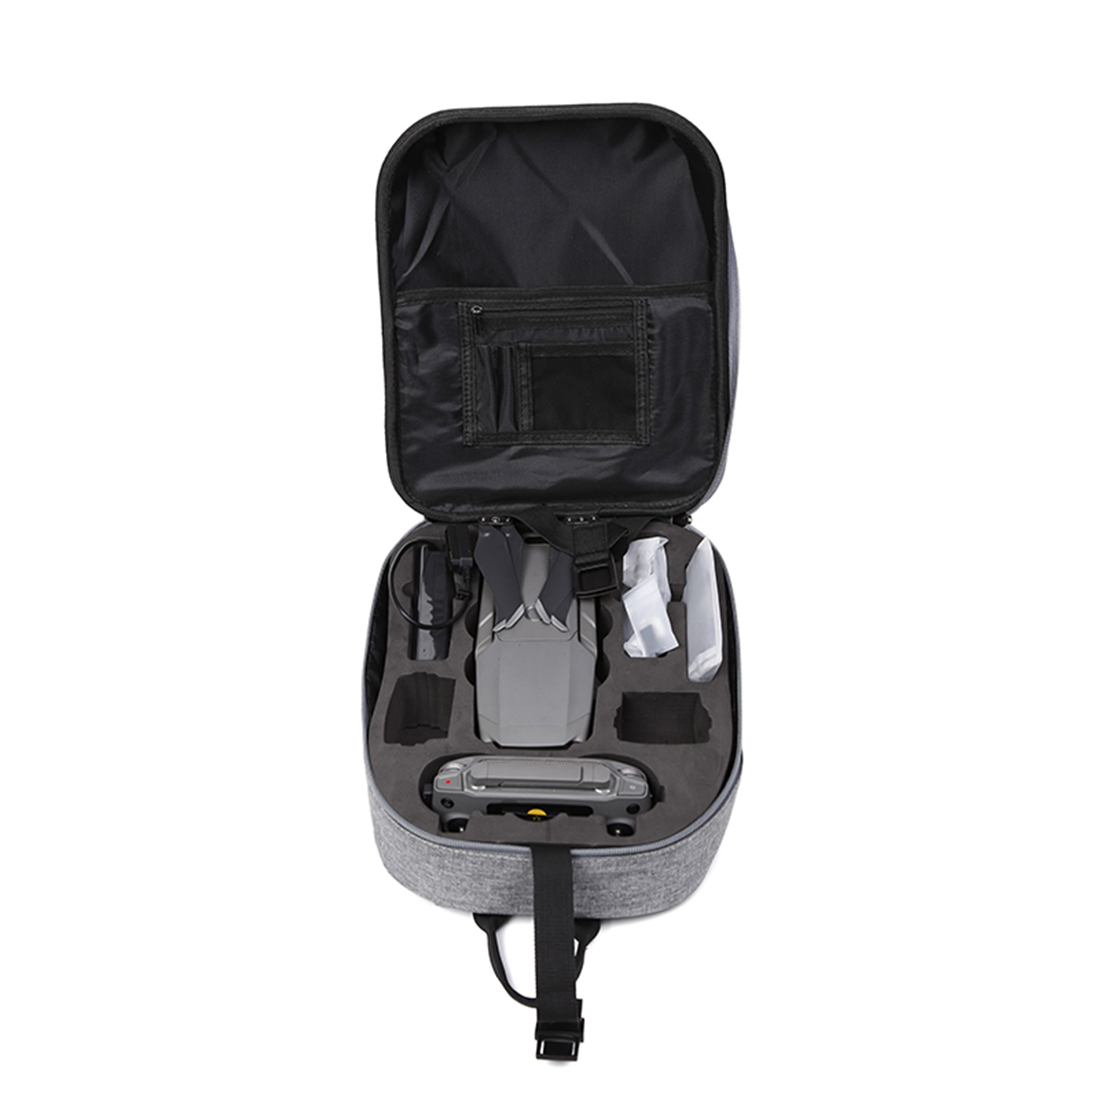 HONNYINRC for DJI MAVIC 2 PRO/MAVIC 2 ZOOM Drone PC Hard Shell Strong Cover Storage Bag Back pack Case - Black New Arrival case for huawei honor 7x shockproof with stand 360 rotation back cover contrast color hard pc